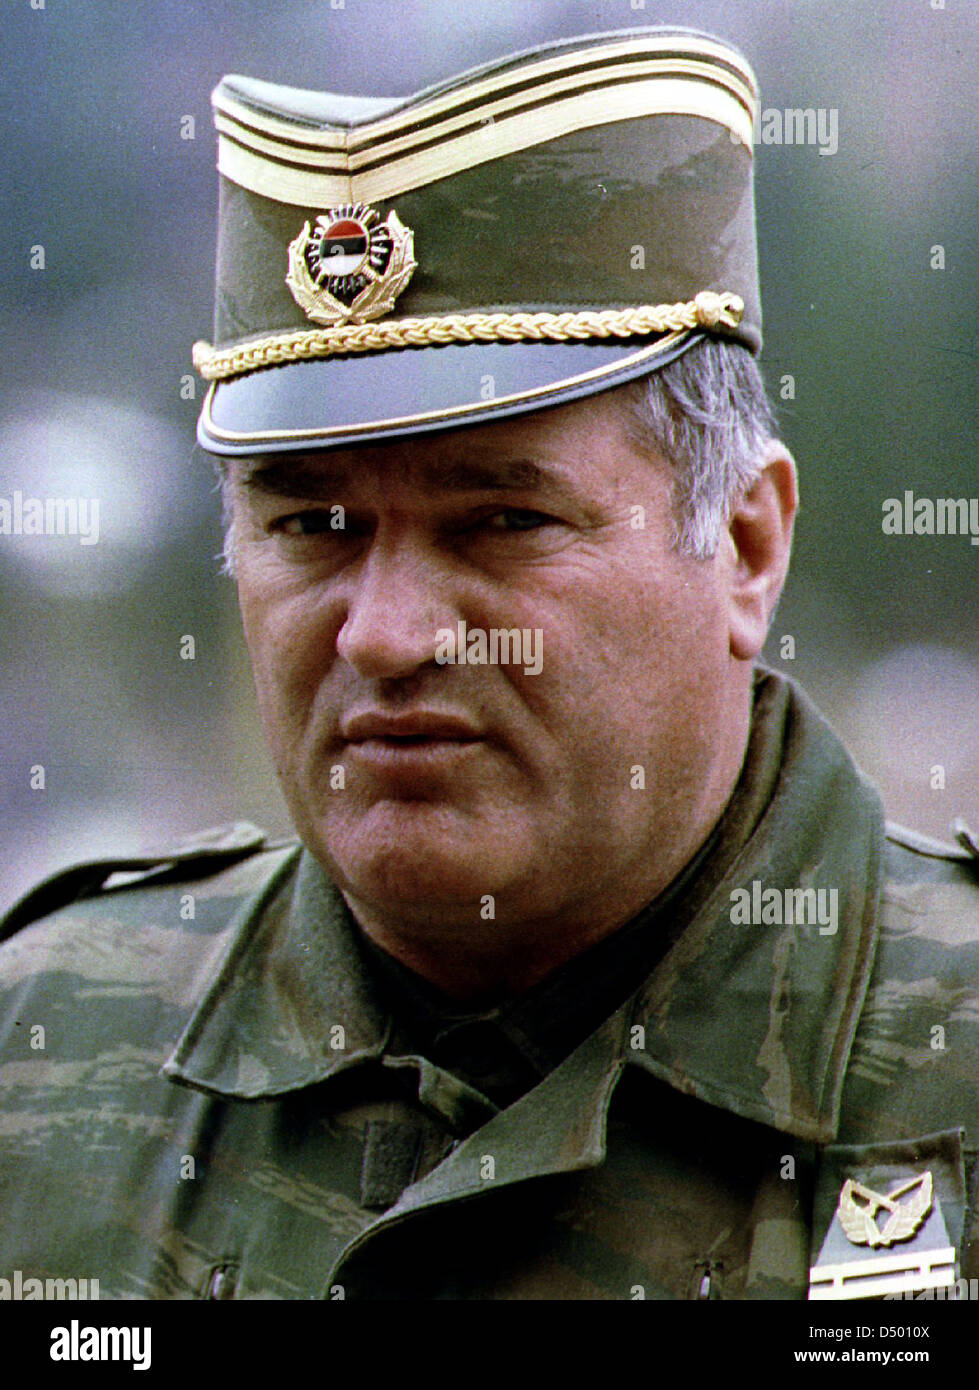 General Ratko Mladic, commander of the Bosnian Serb army, prepares to meet Bosnian Serb political leaders in Pale, - Stock Image